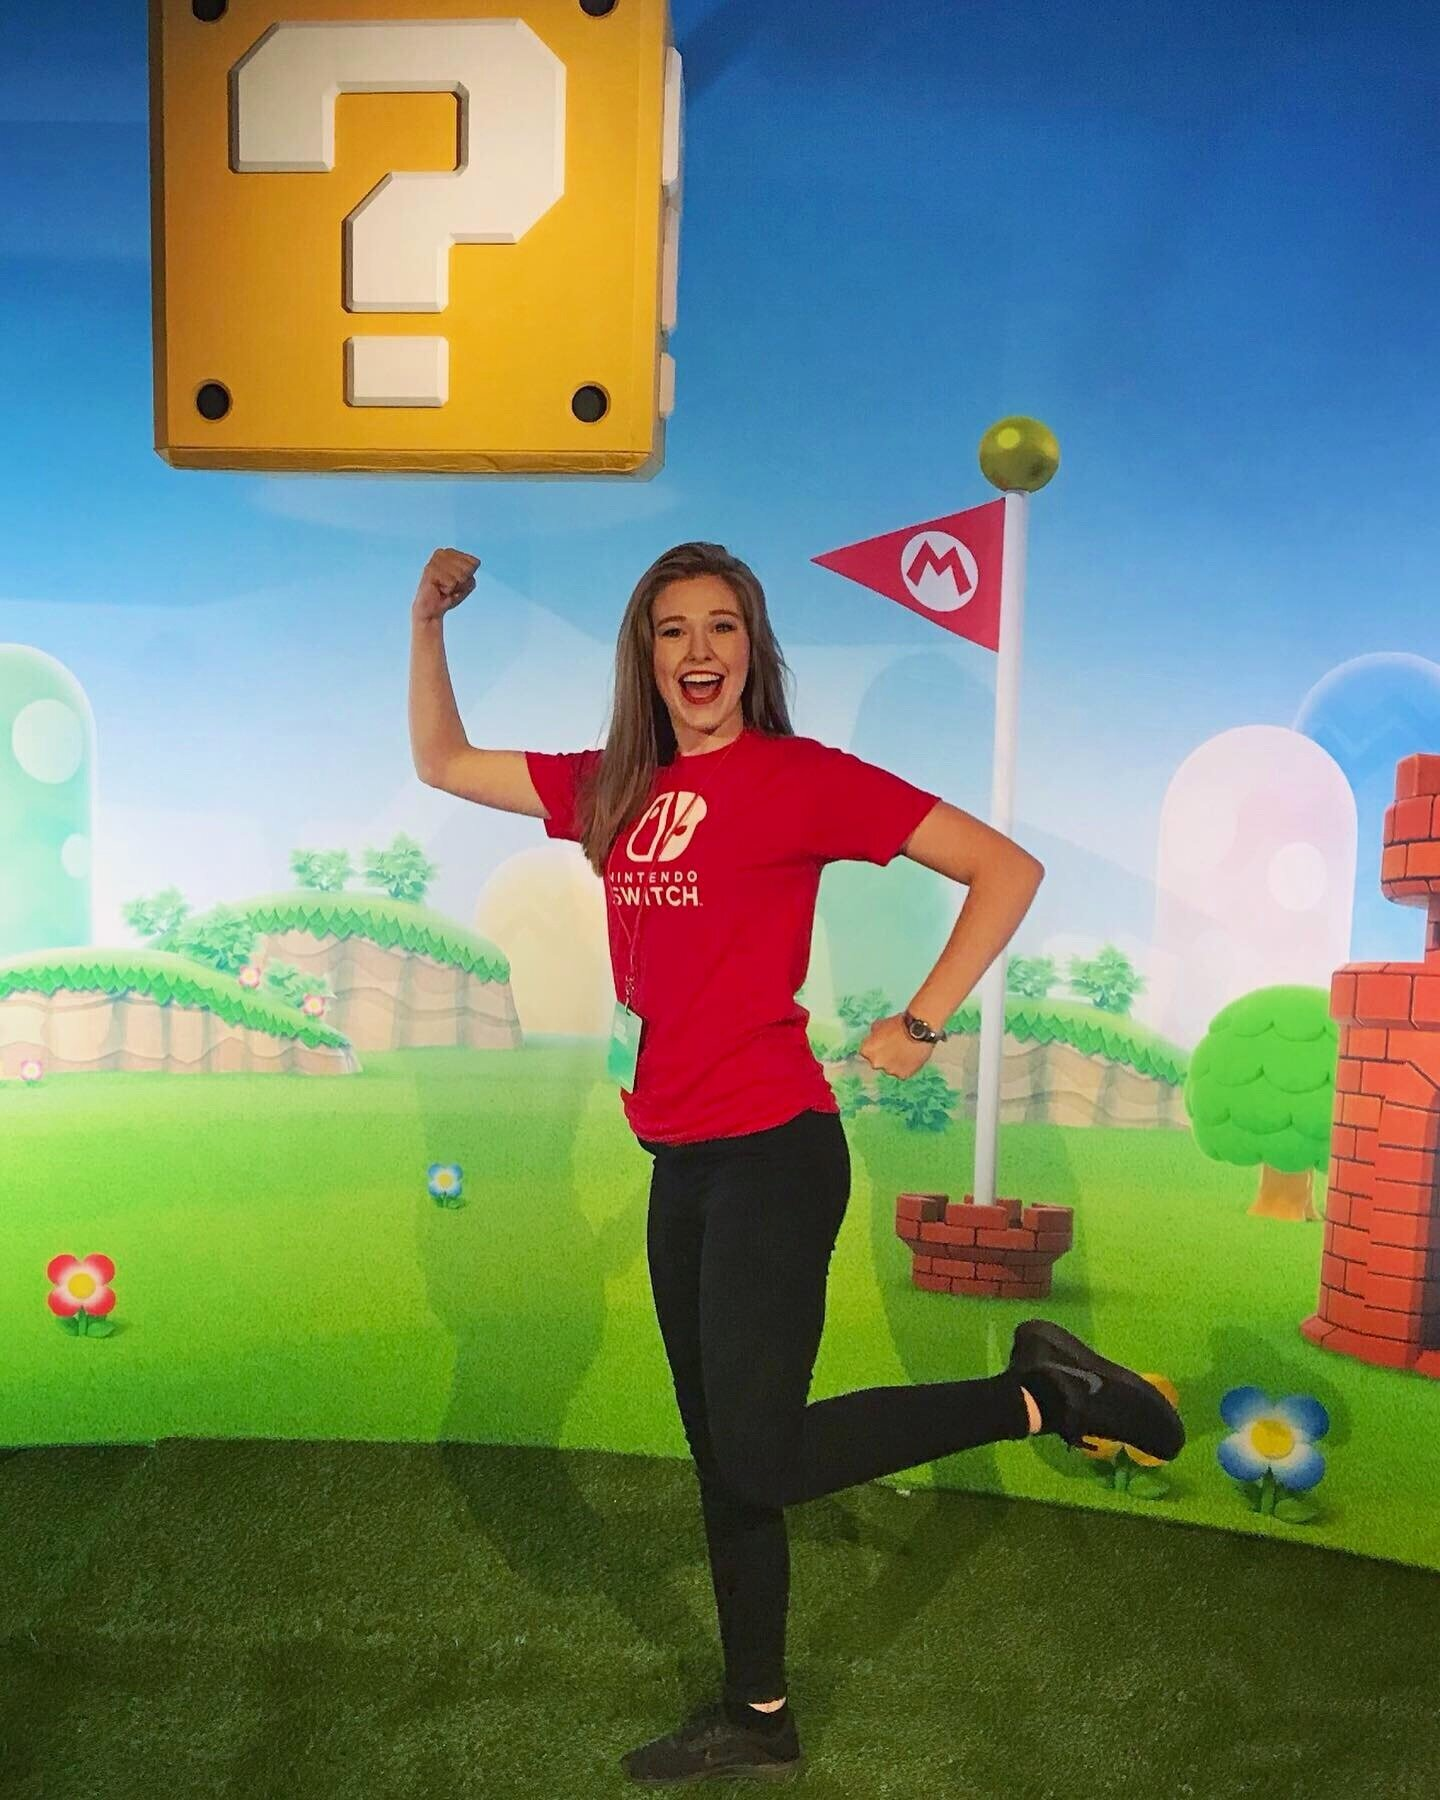 Promoting with Target and Nintendo! - This September I had the opportunity to work with Target and Nintendo for an amazing private event! Lots of great Nintendo Switch games coming out this Fall! My inner geek was very happy to represent such great companies!